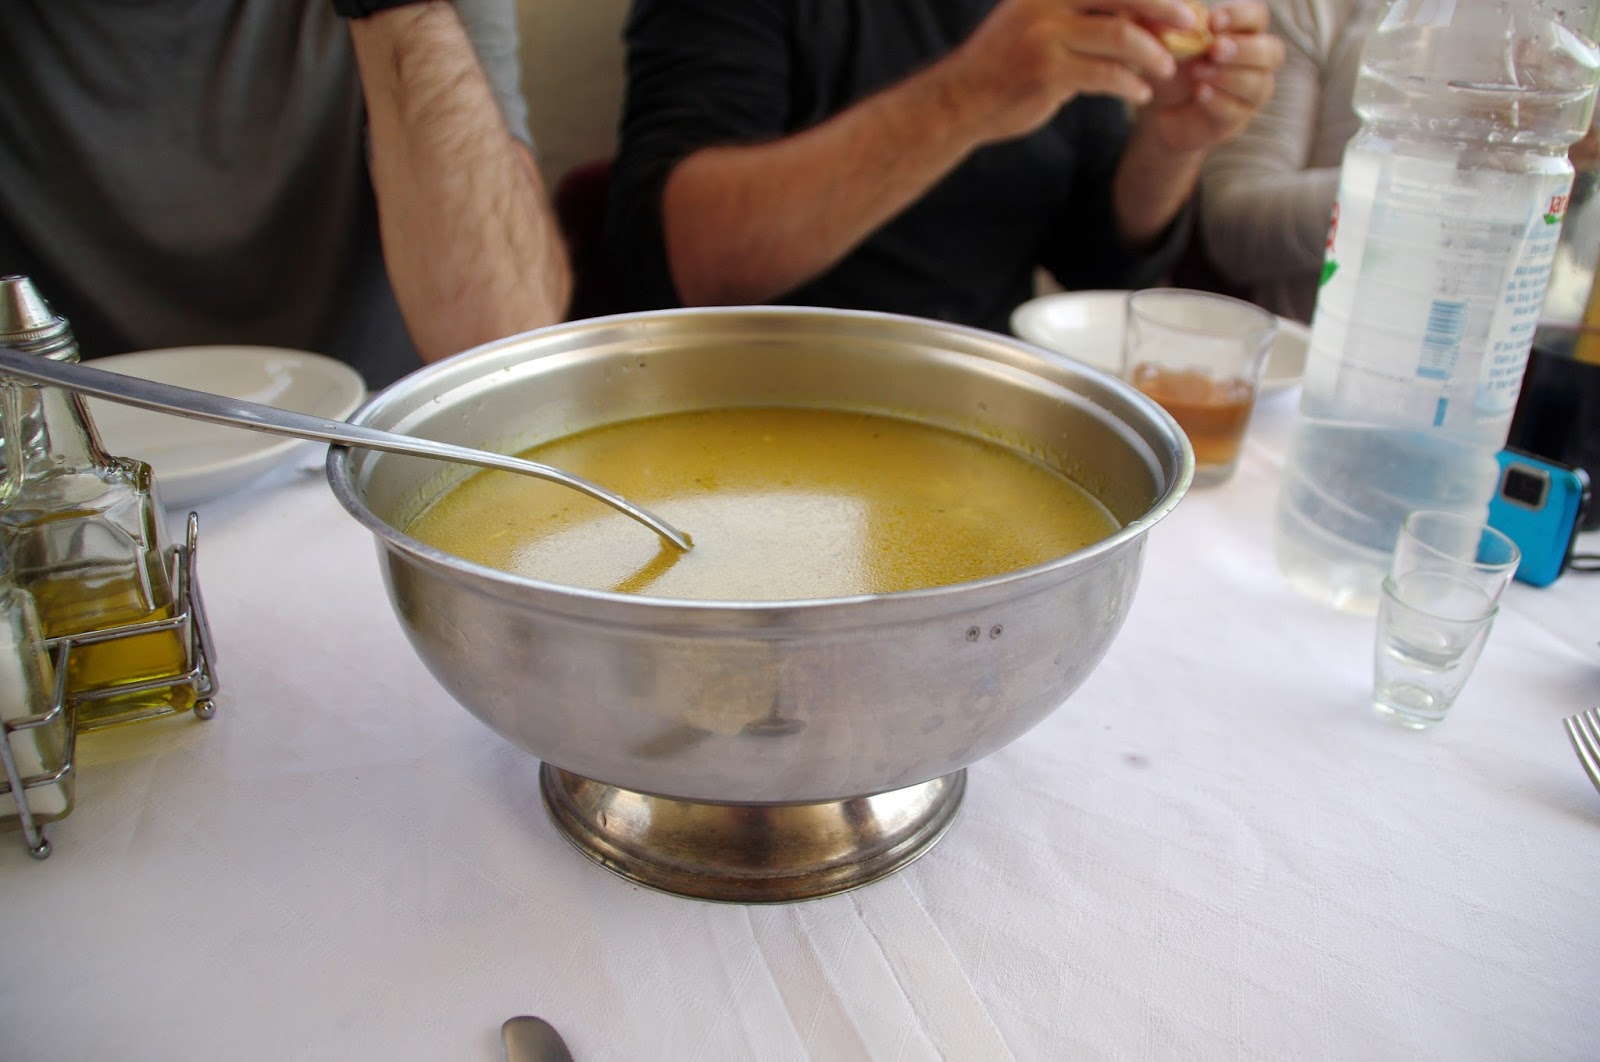 Croatian soup lunch